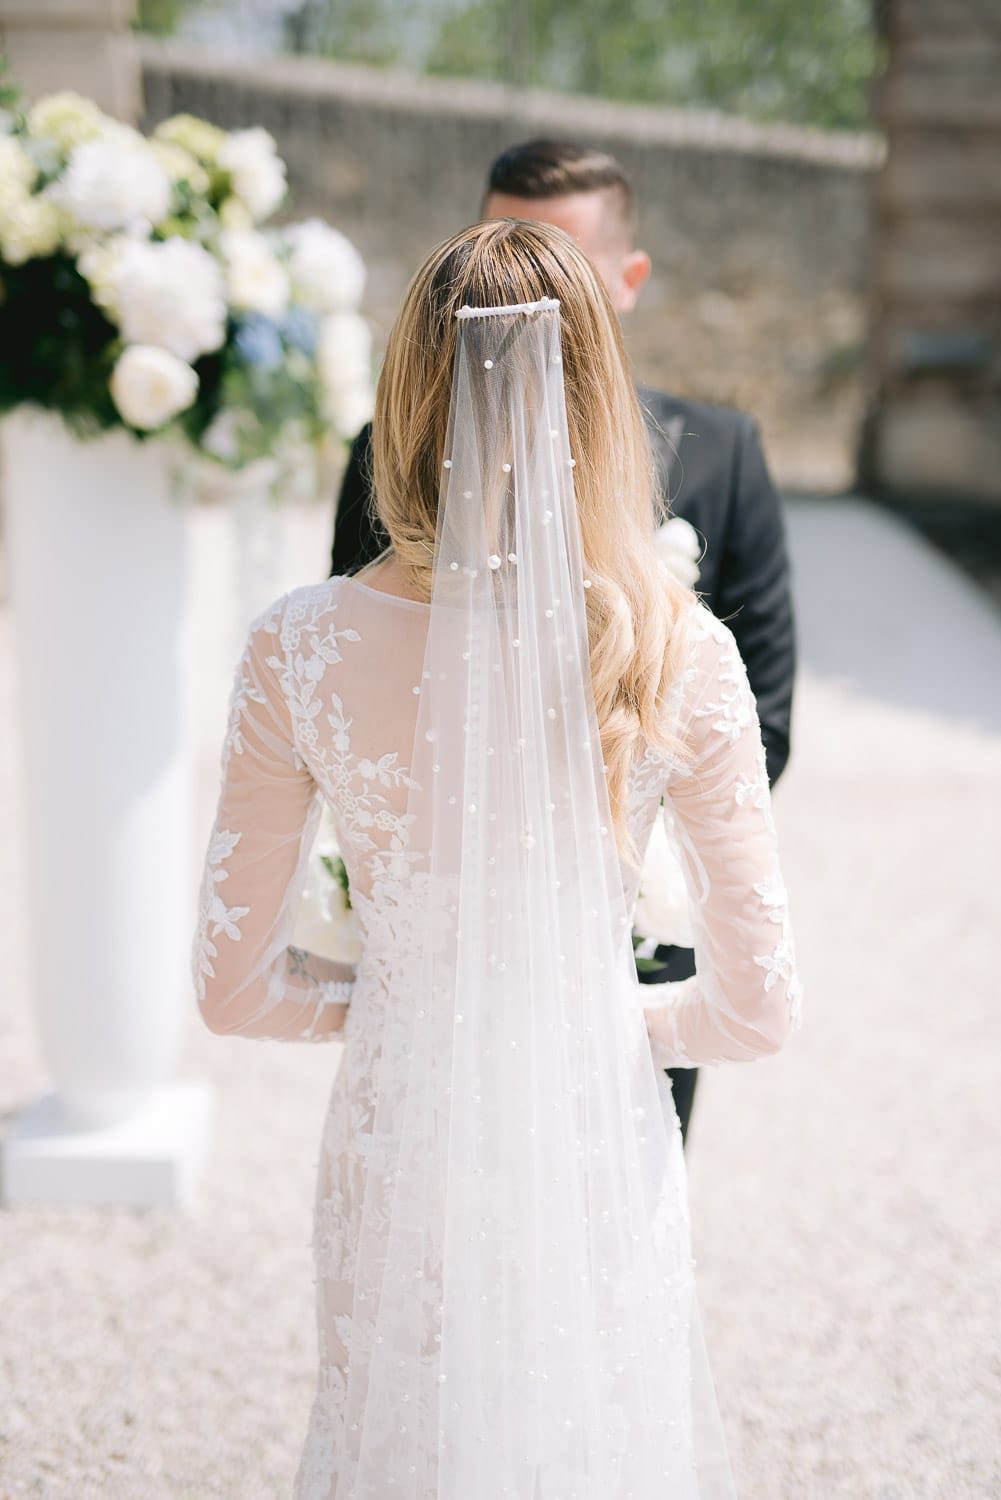 bride gown wedding italy